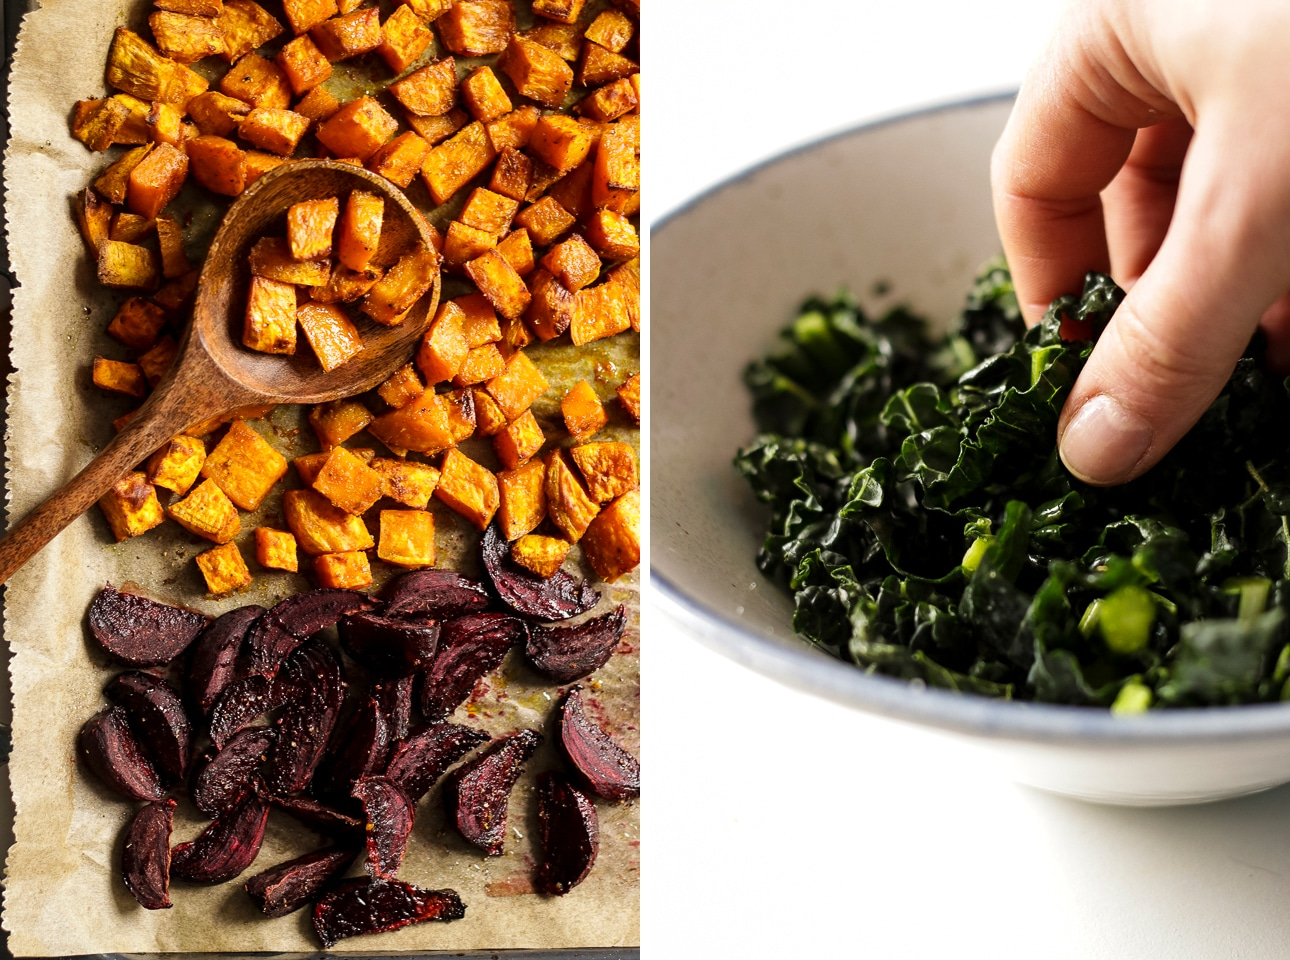 Roasted Sweet Potatoes and Red Beets Next to a Bowl of Kale Collage